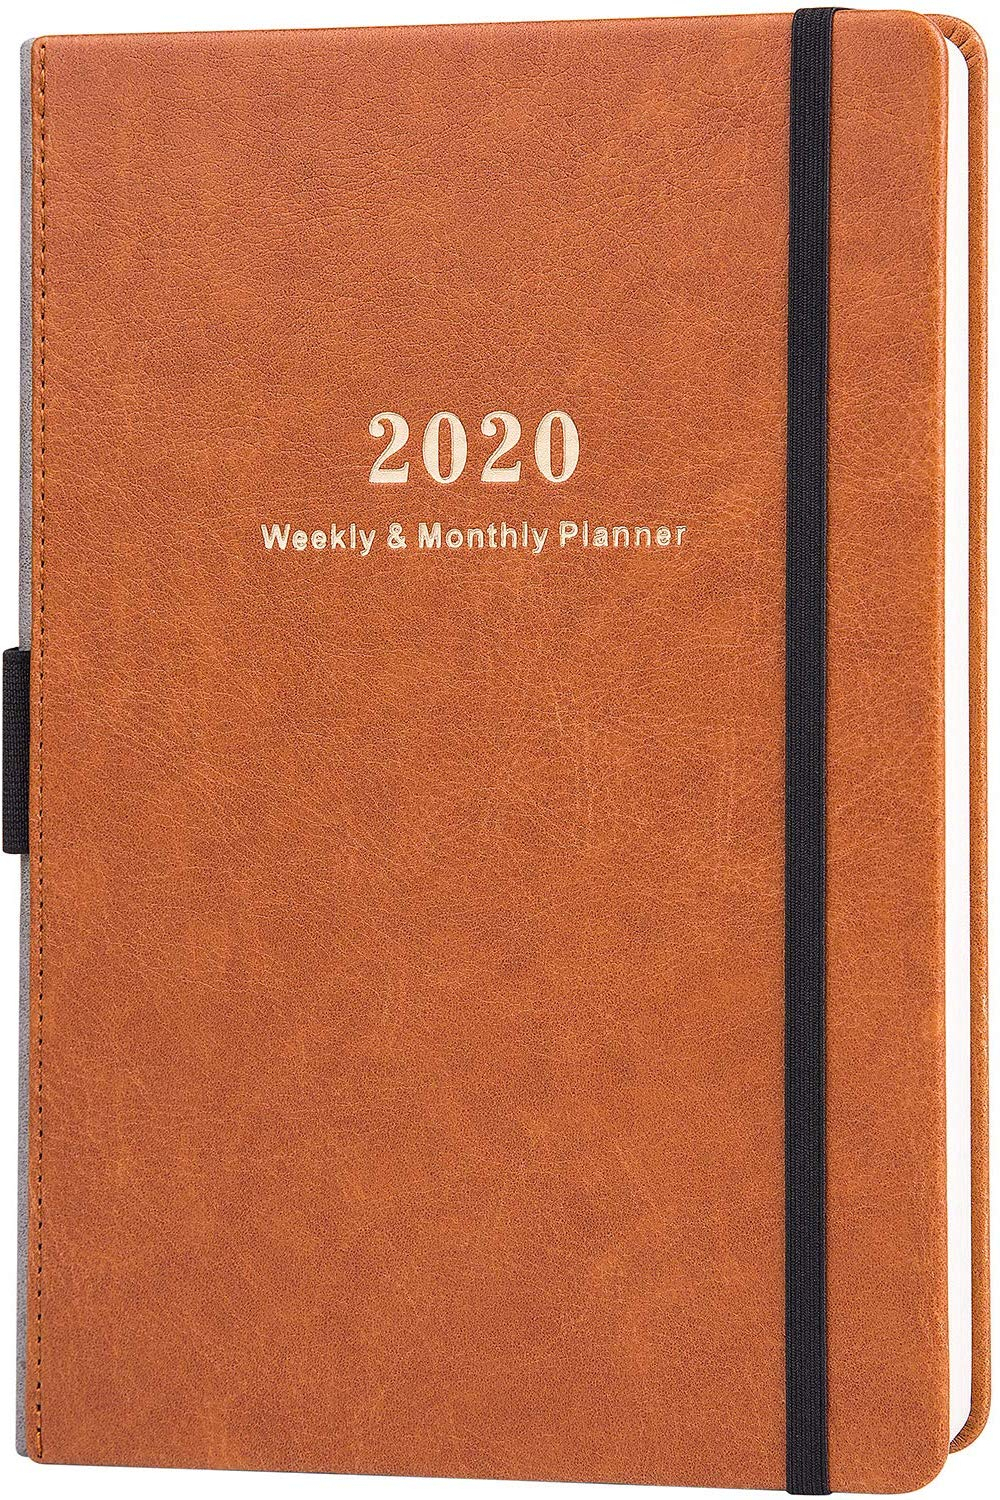 Lemome Premium Pen Holder & Pocket Academic Weekly Planner for 2021-2021: Two-Year Monthly Pocket